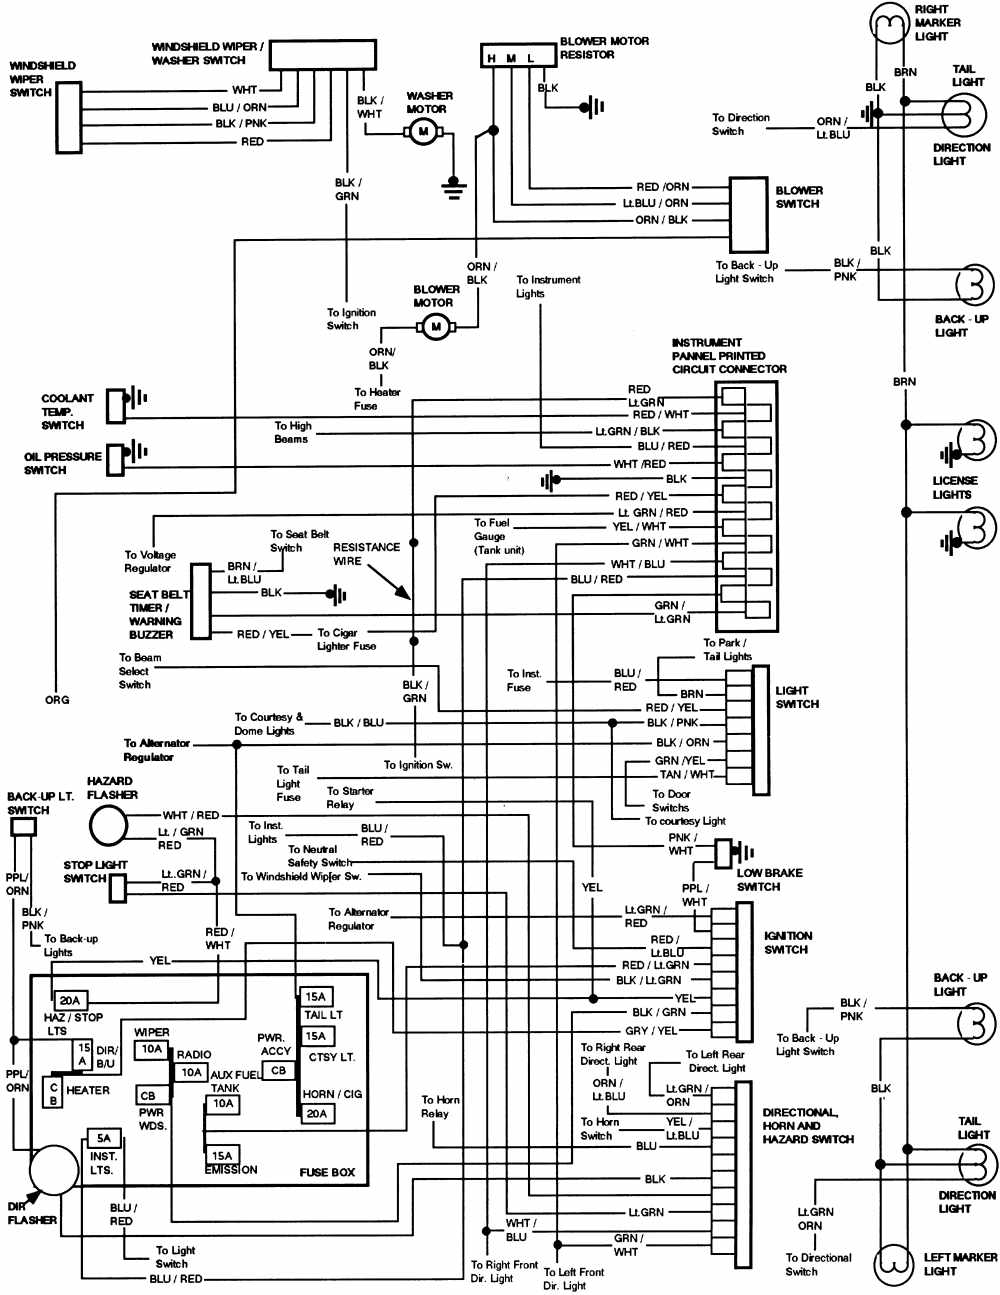 2000 ford taurus se interior fuse box diagram